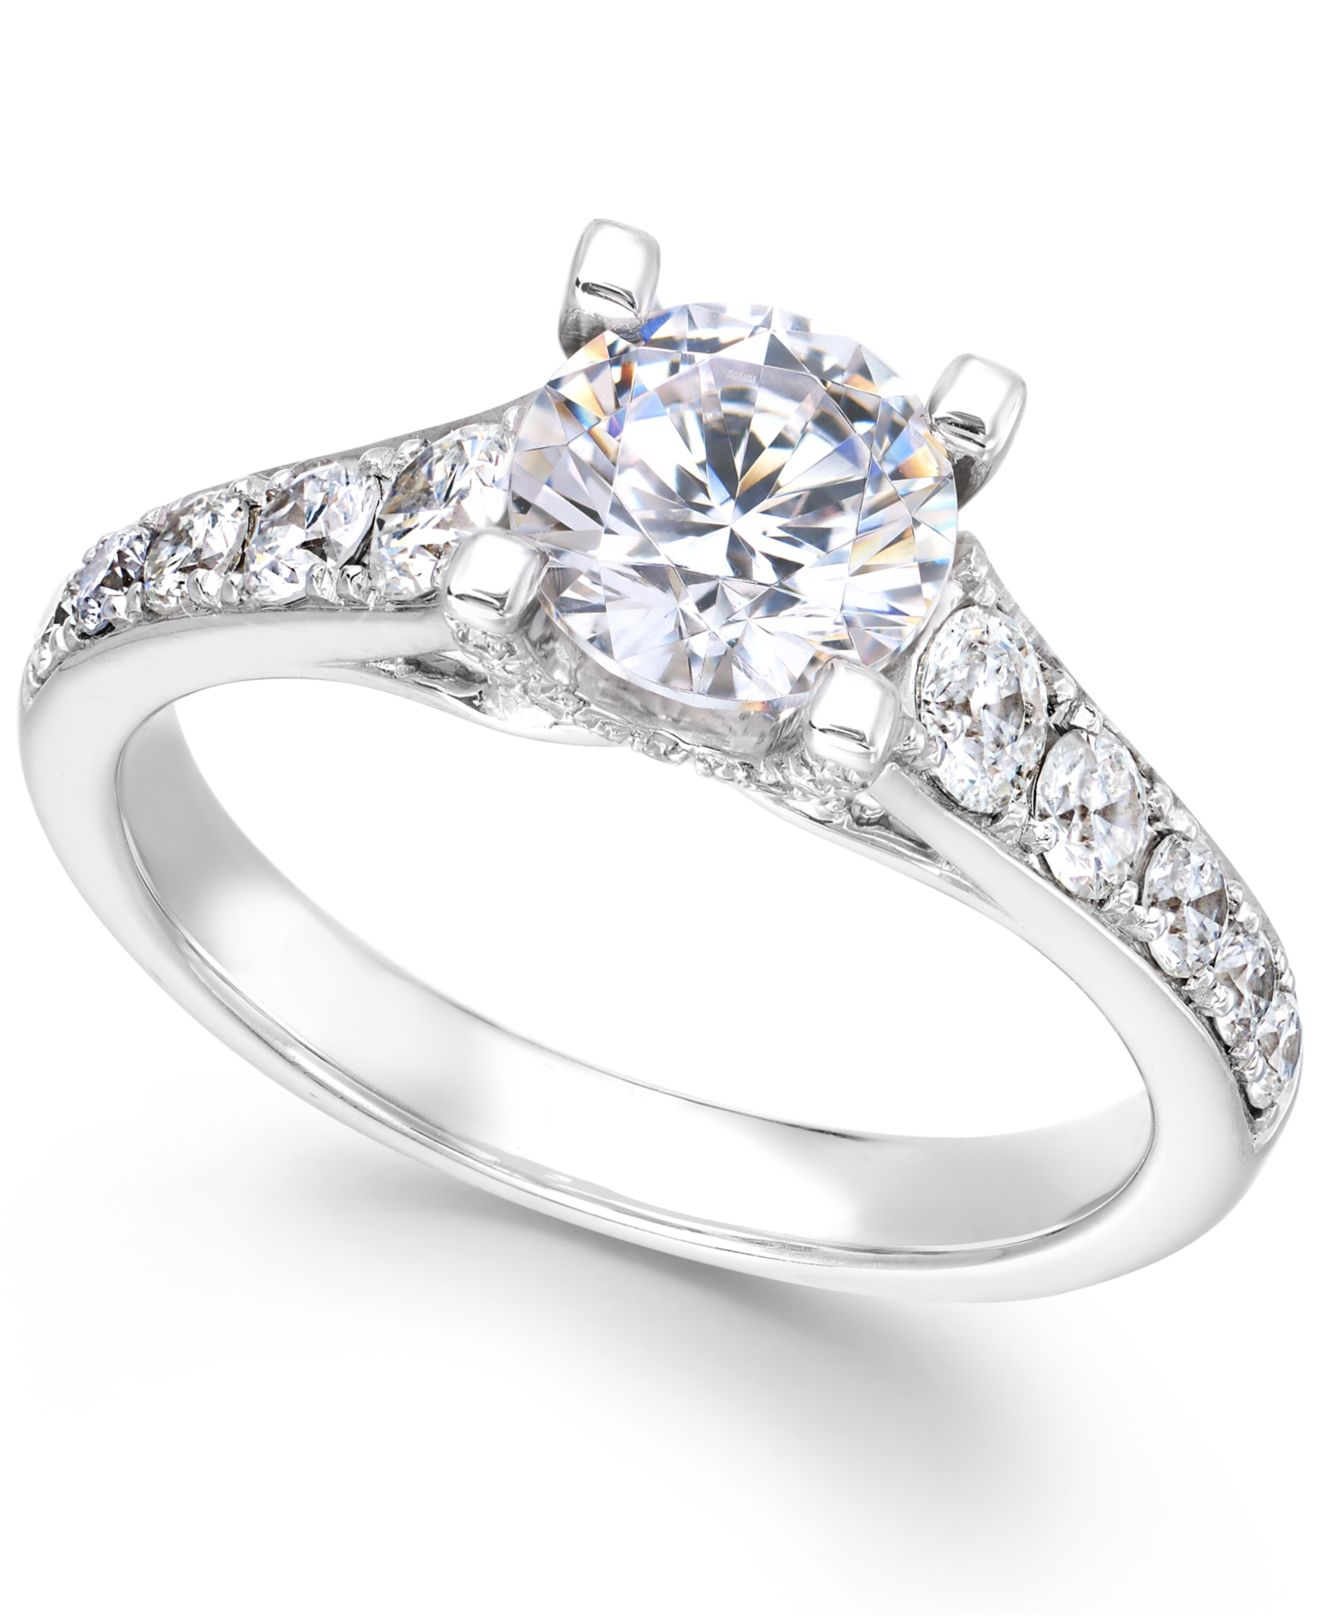 x3 certified diamond engagement ring in 18k white gold 2 With 2 1 4 ct tw diamond wedding ring